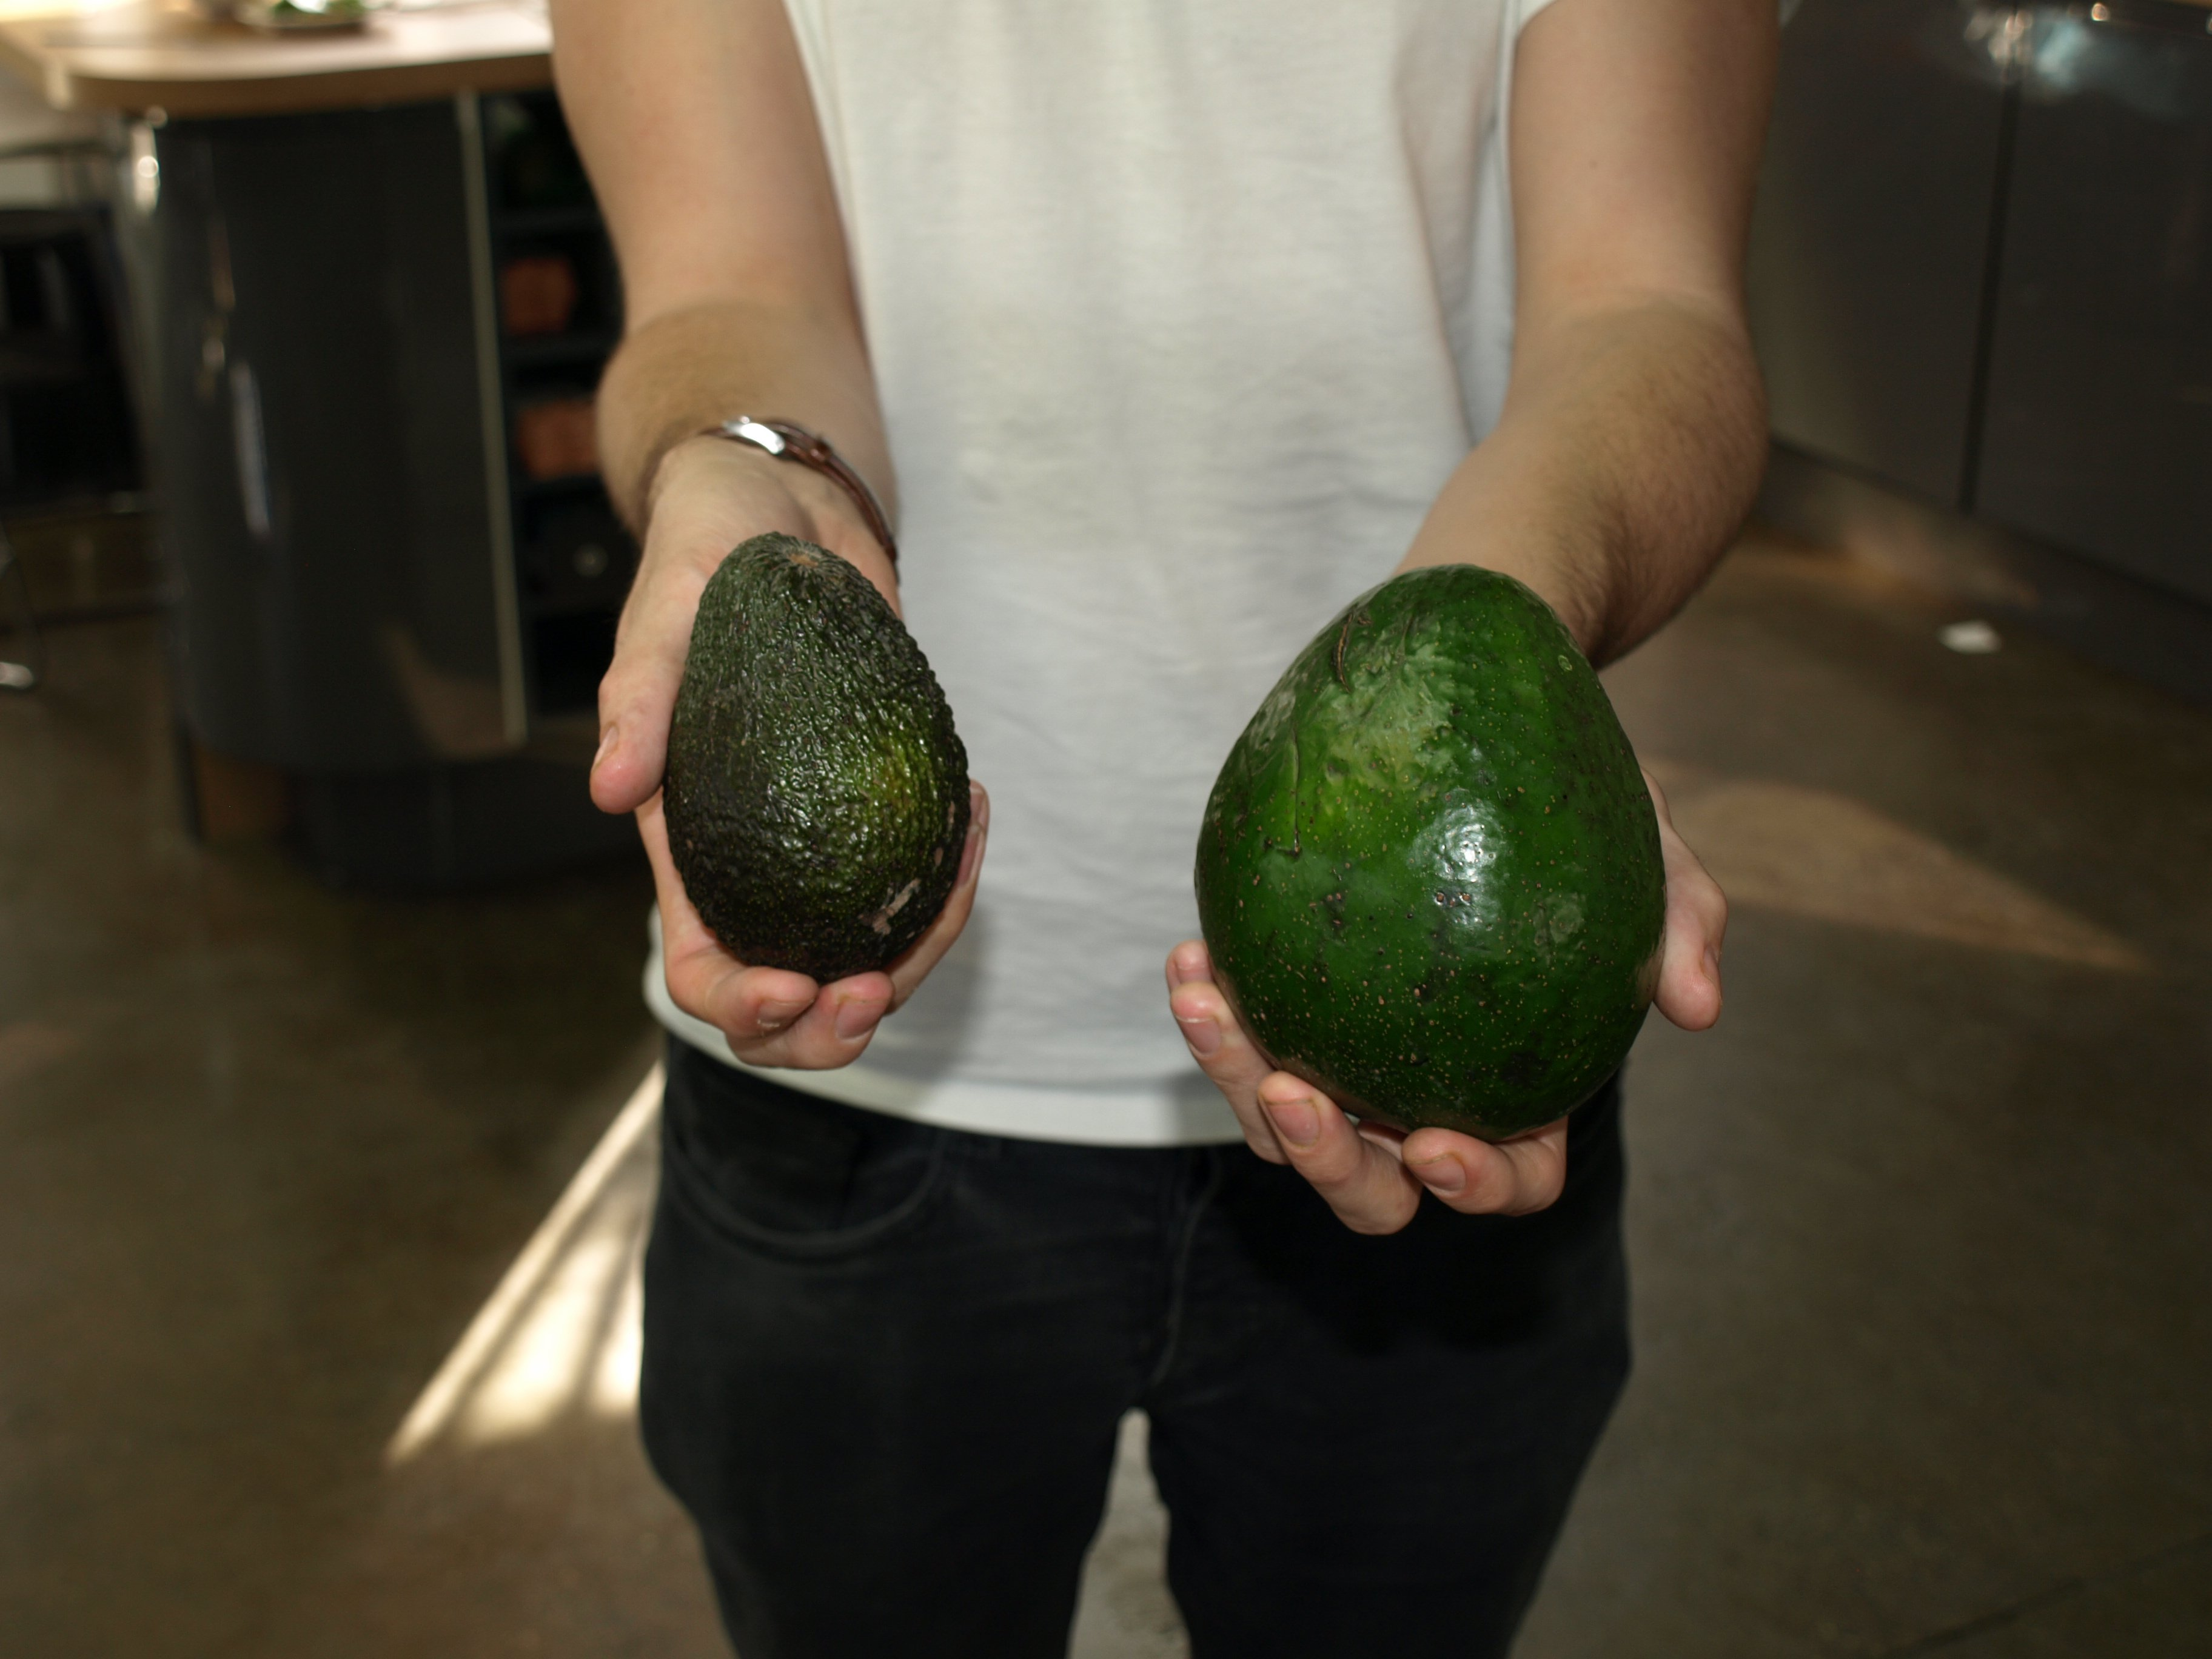 Here it is next to a regular avocado